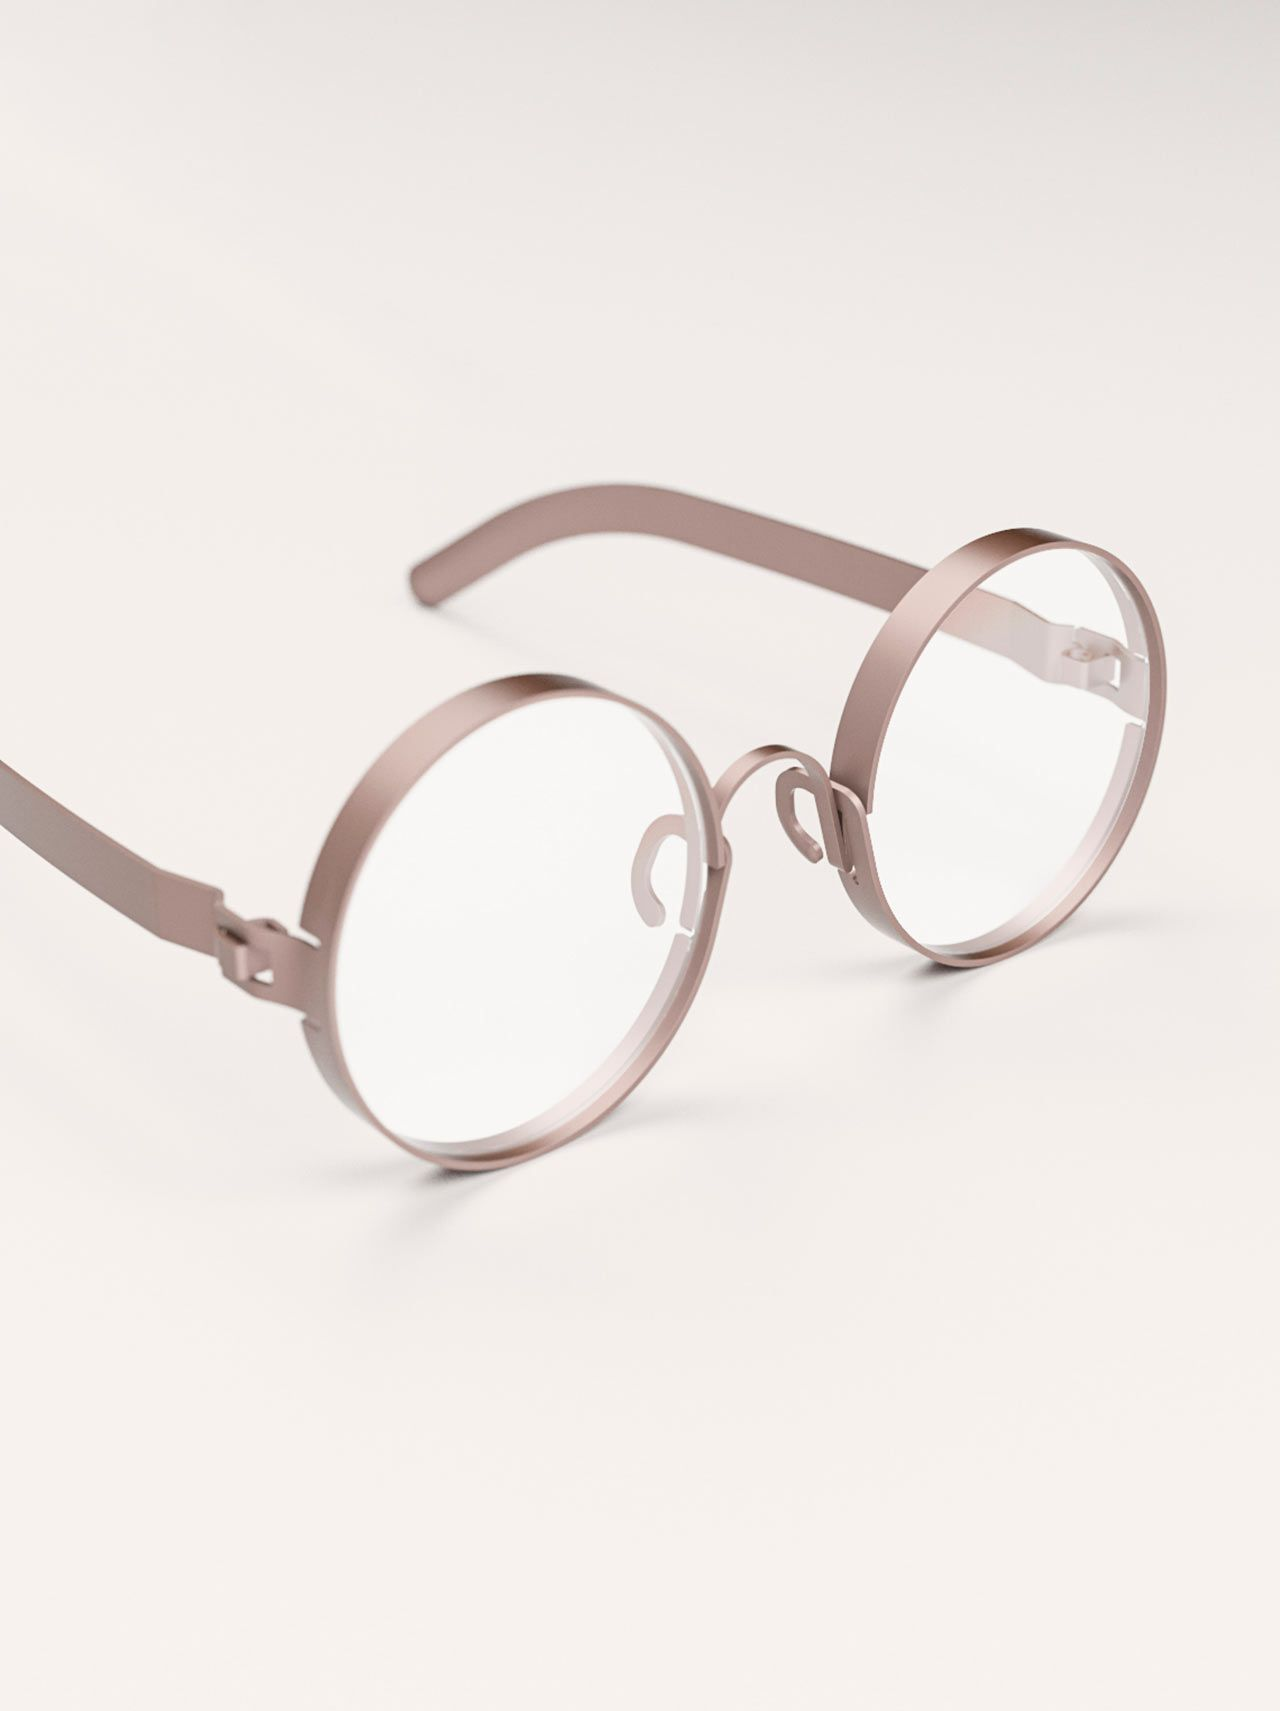 ff80ed5a96d43 FRAME  Eyeglasses Cut From Sheet Metal to Reduce Waste